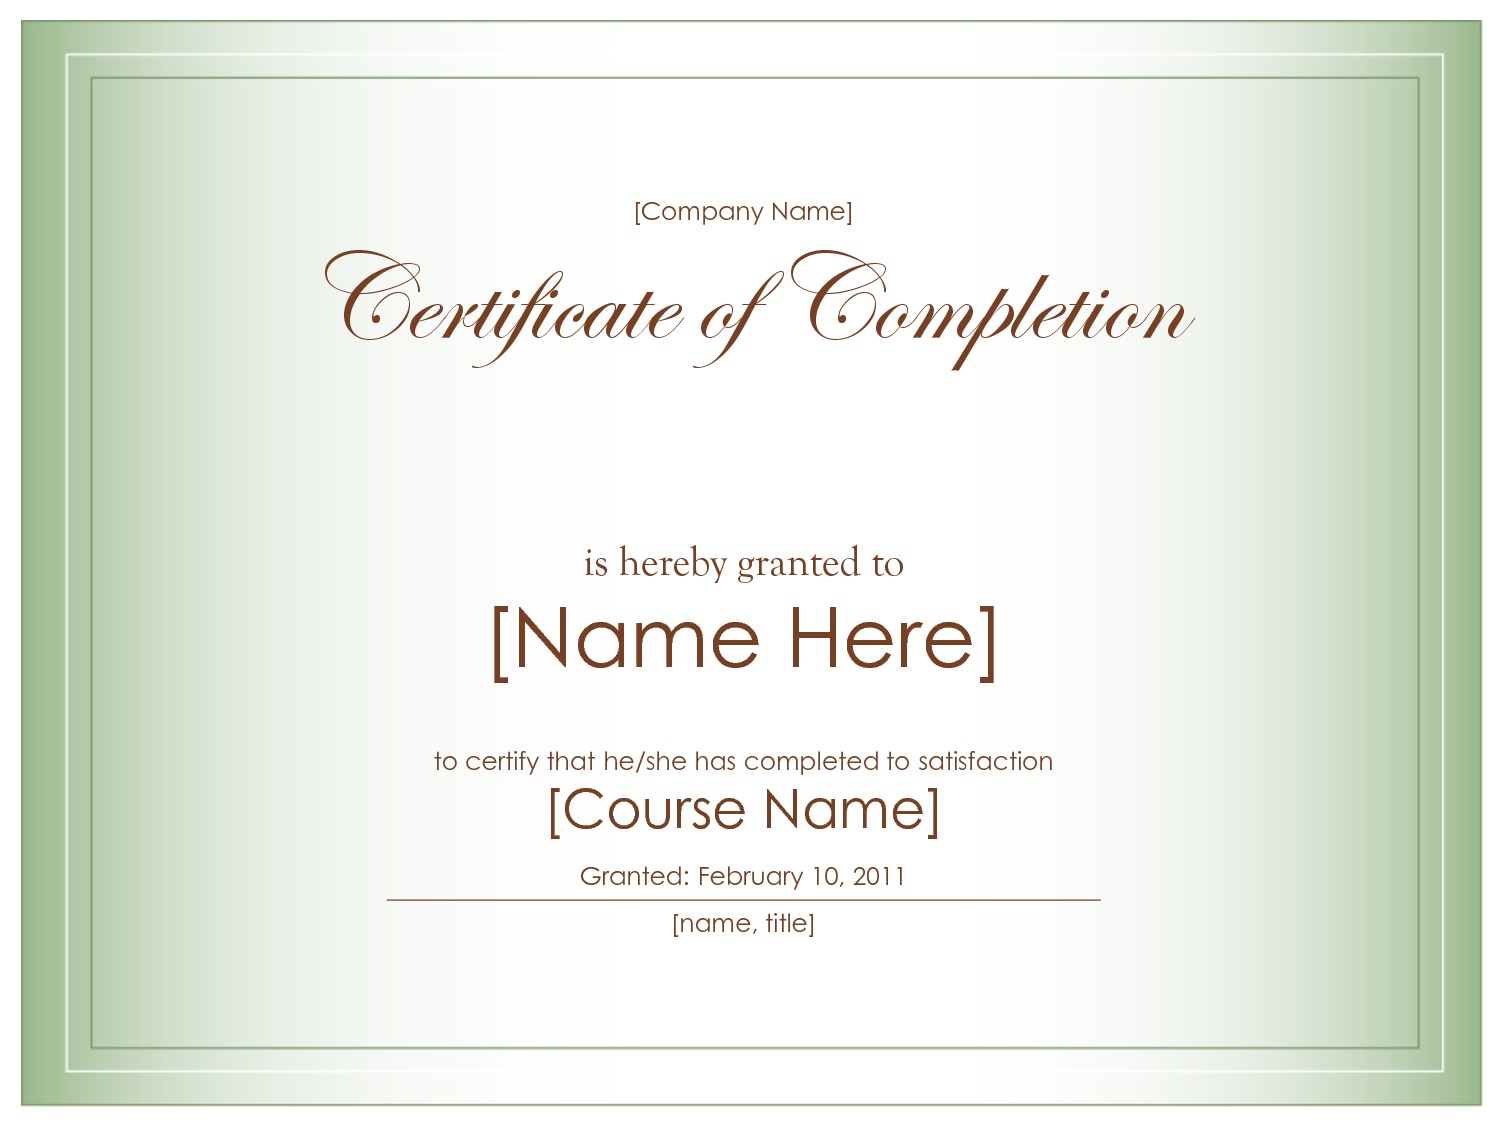 blank certificate templates to print activity shelter